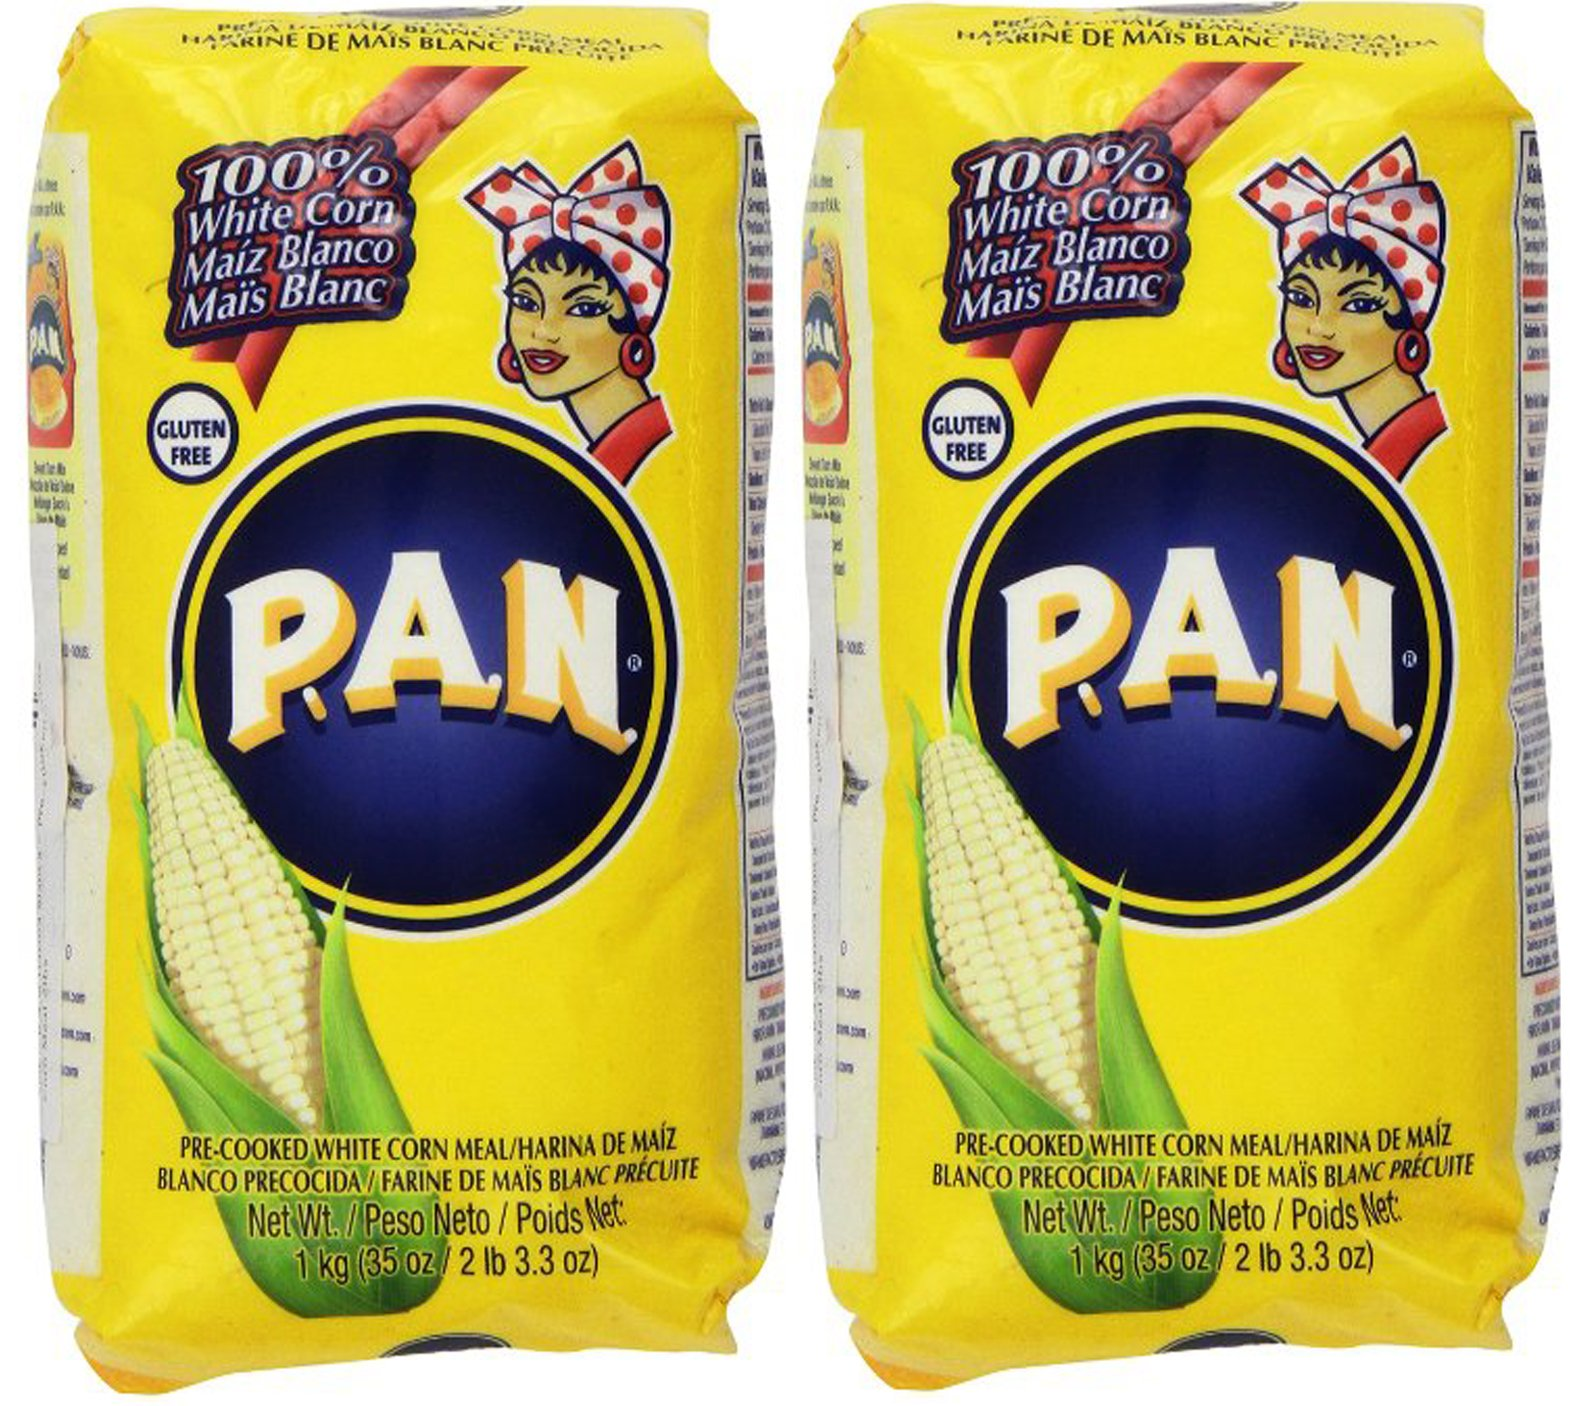 P.A.N Harina Blanca - Pre-cooked White Corn Meal 2LB. 3.3 Oz (Pack